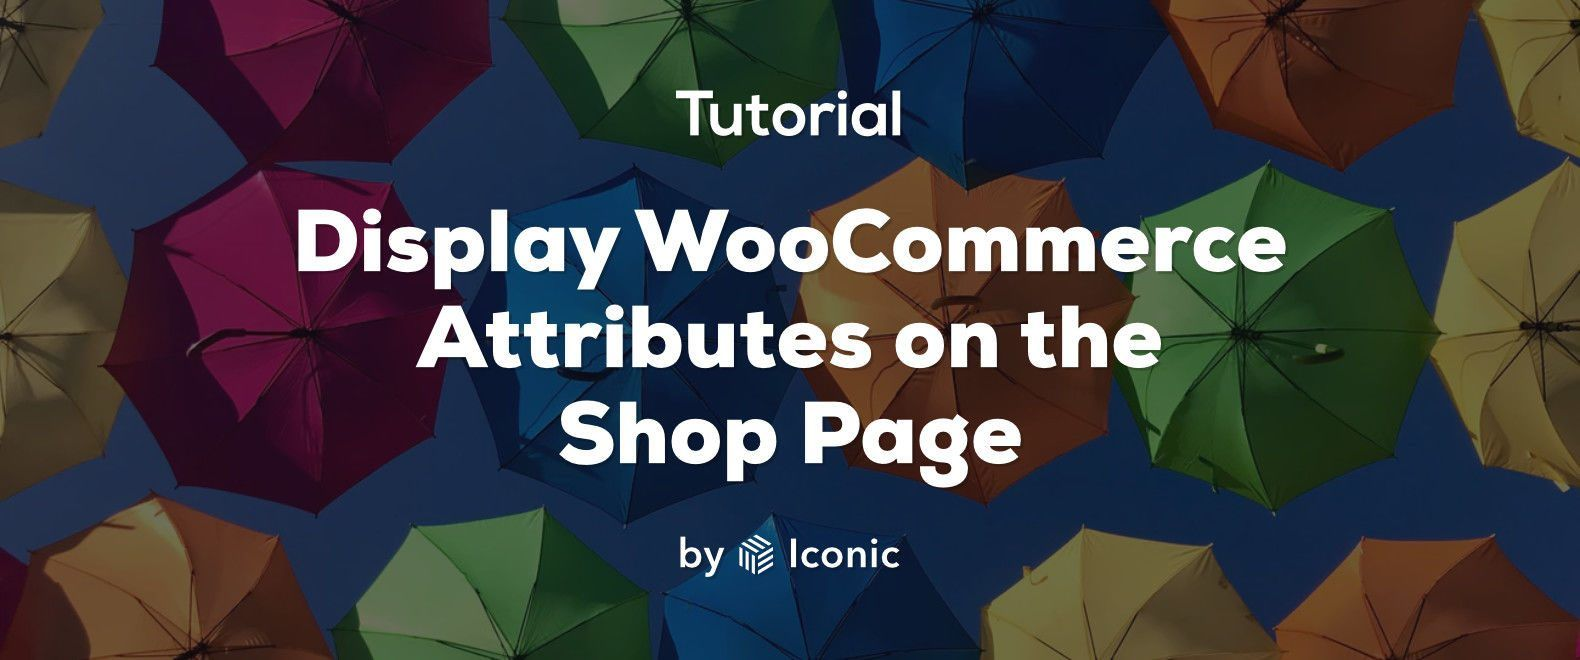 WooCommerce Display Attributes on Shop Page